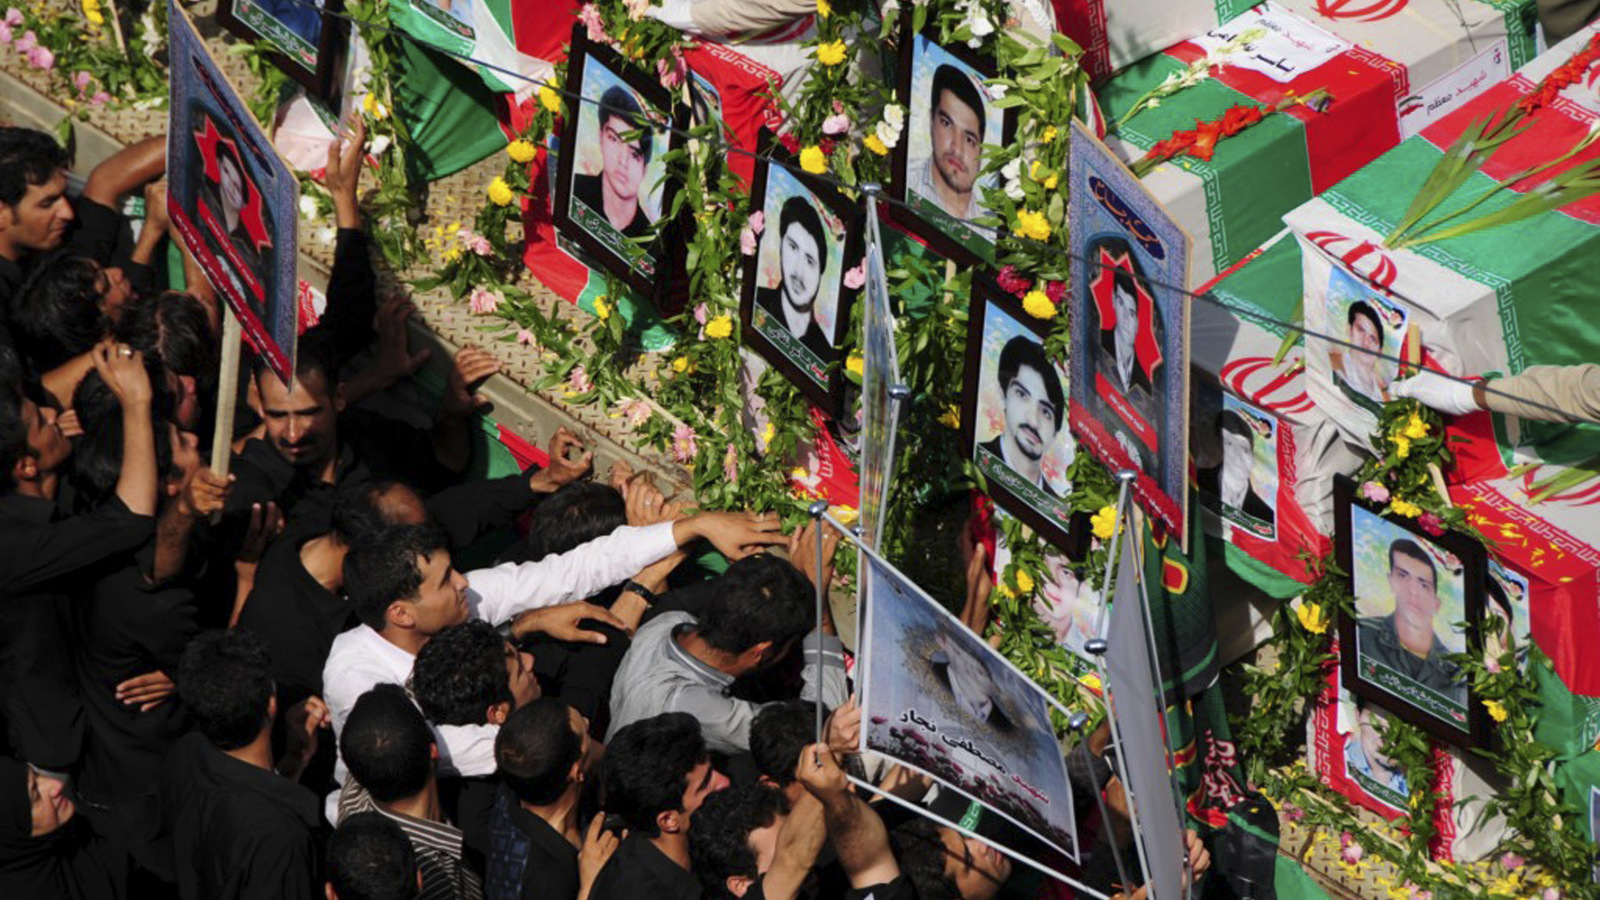 During a funeral ceremony, people mourn next to flag-draped coffins of victims of two bomb blasts in the city of Zahedan, Iran, July 17, 2010. Jundallah, which has carried out several other bombings in southeast Iran over the past few years, claimed responsibility for the blasts, which killed 27. (Fars/Ali Azimzadeh)